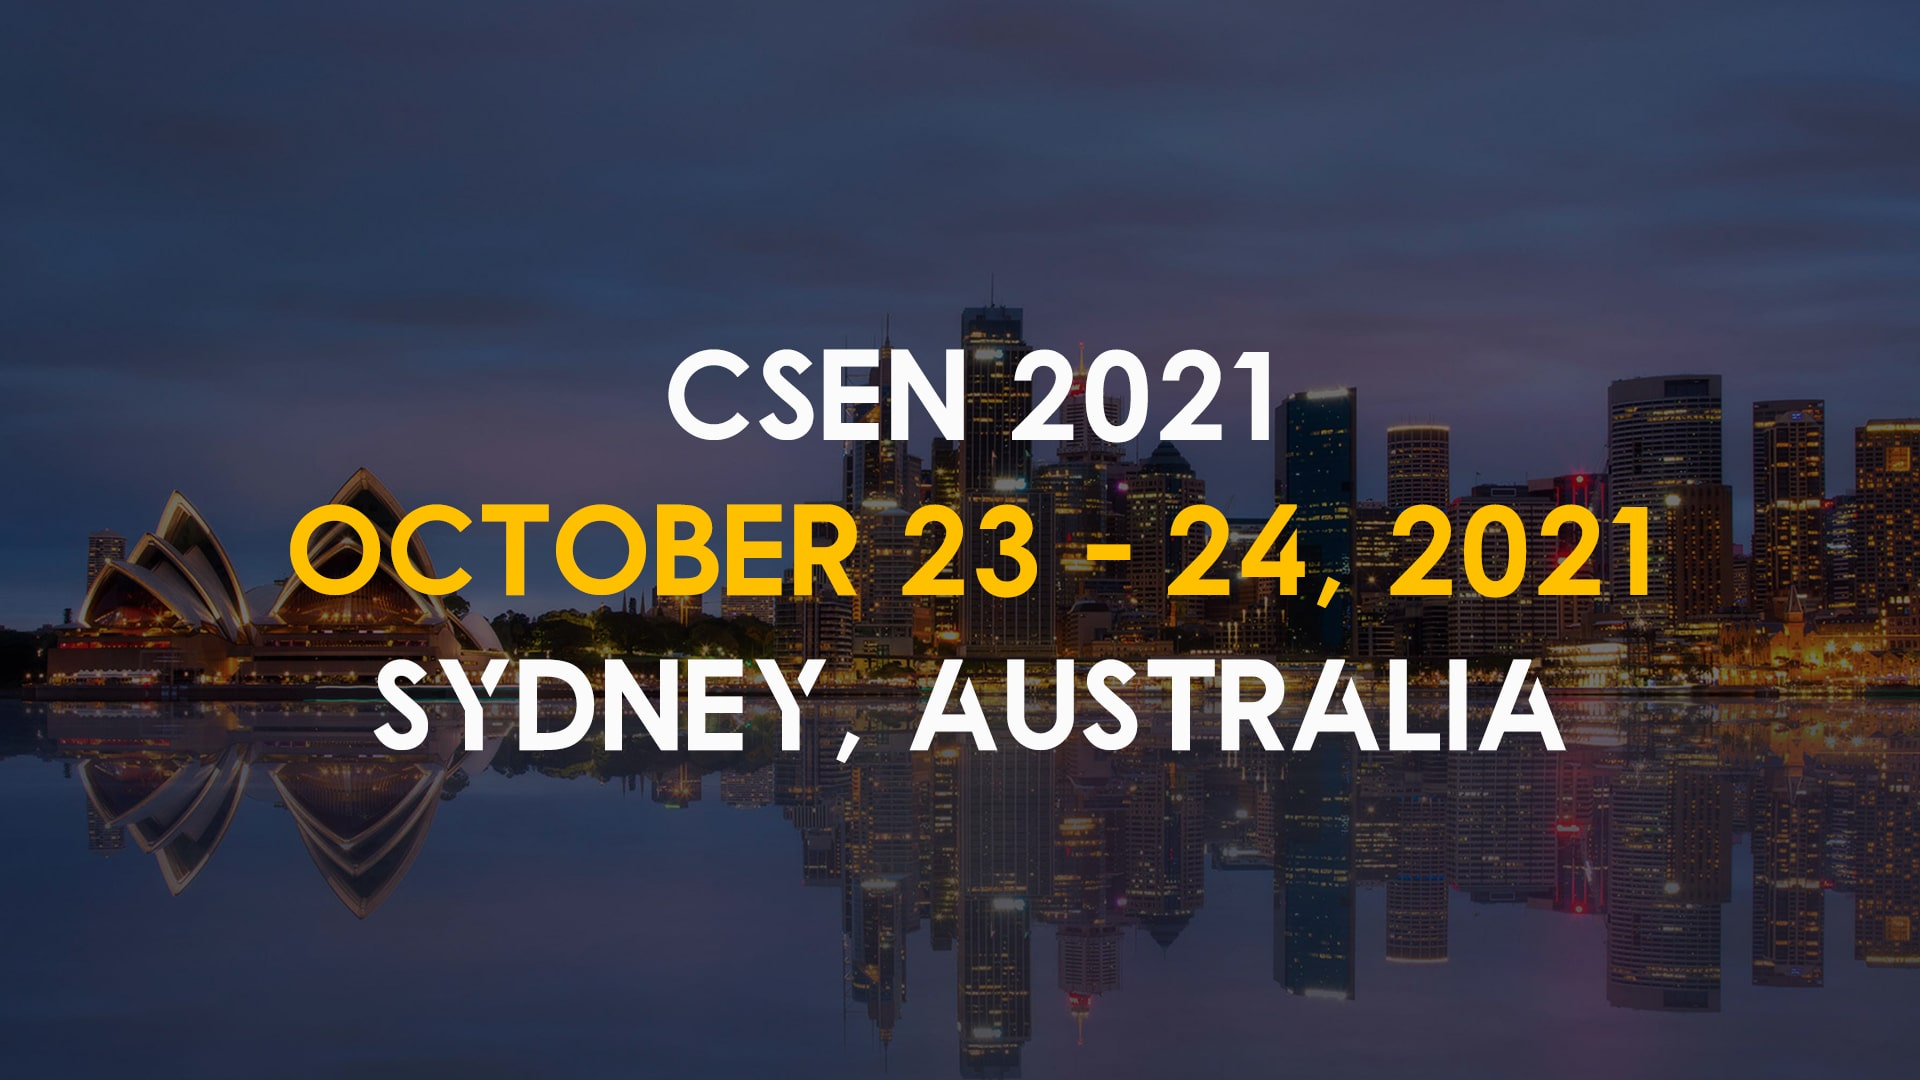 8th International Conference on Computer Science and Engineering (CSEN 2021)